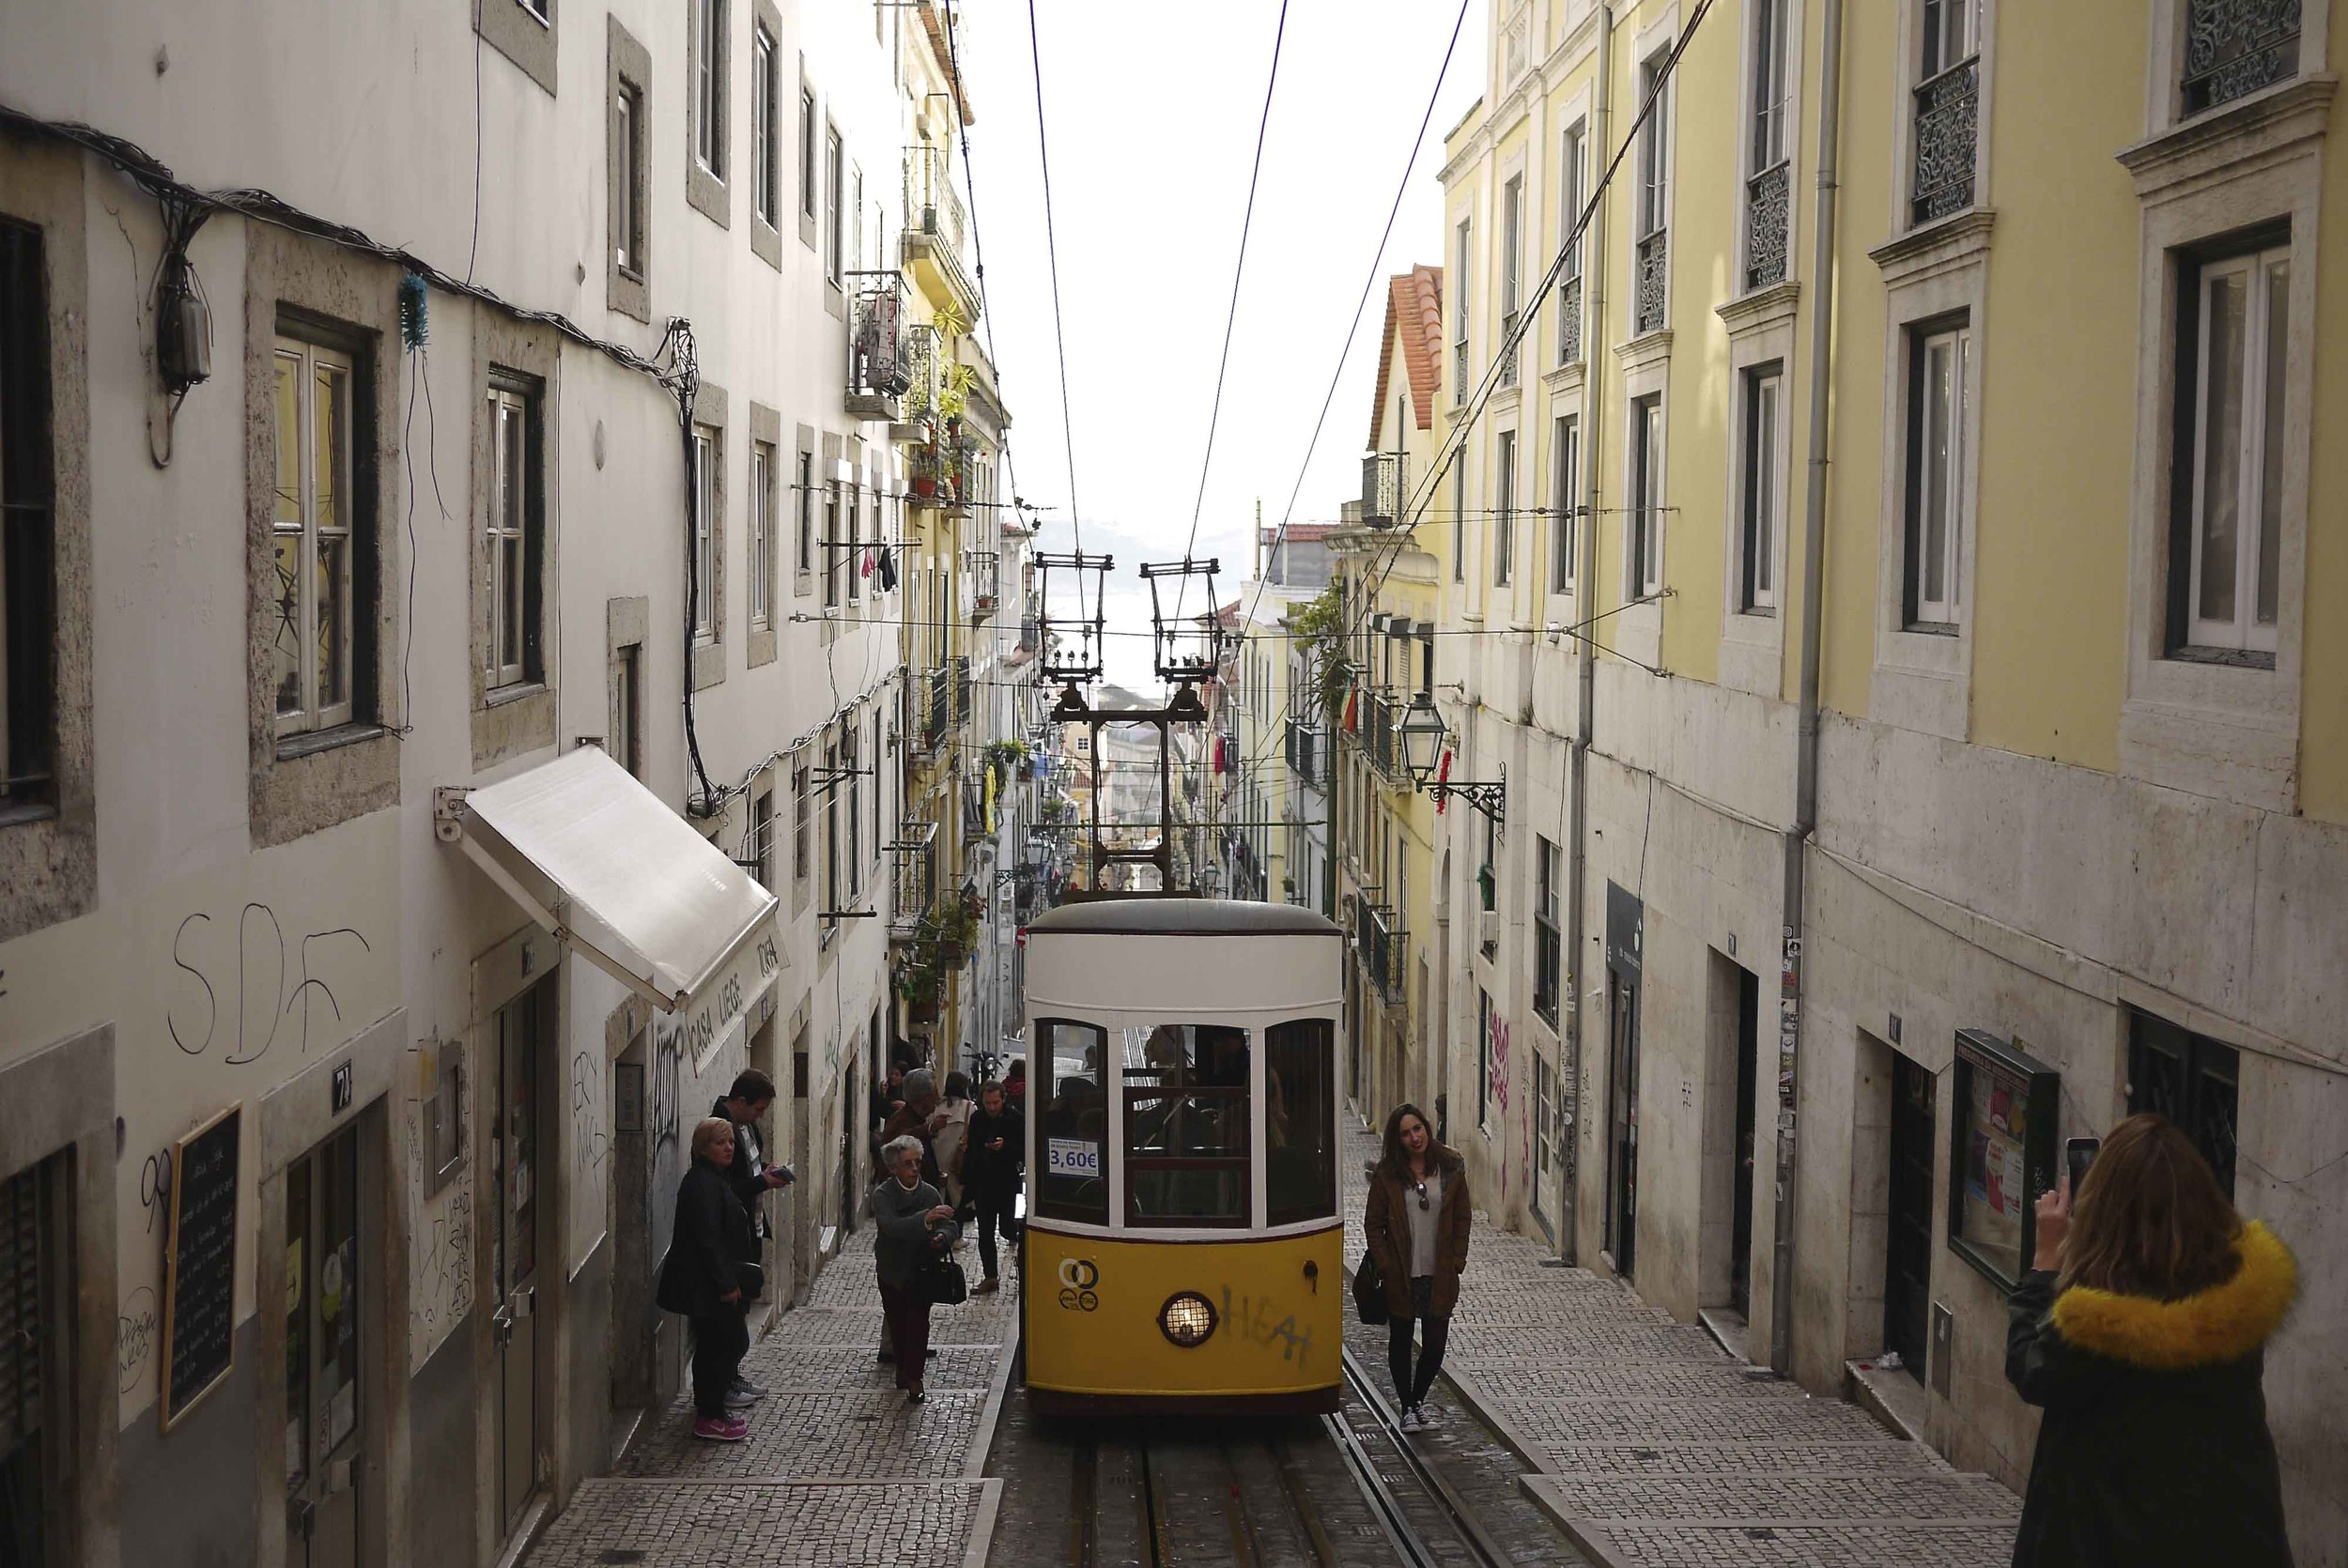 Traveling through Portugal